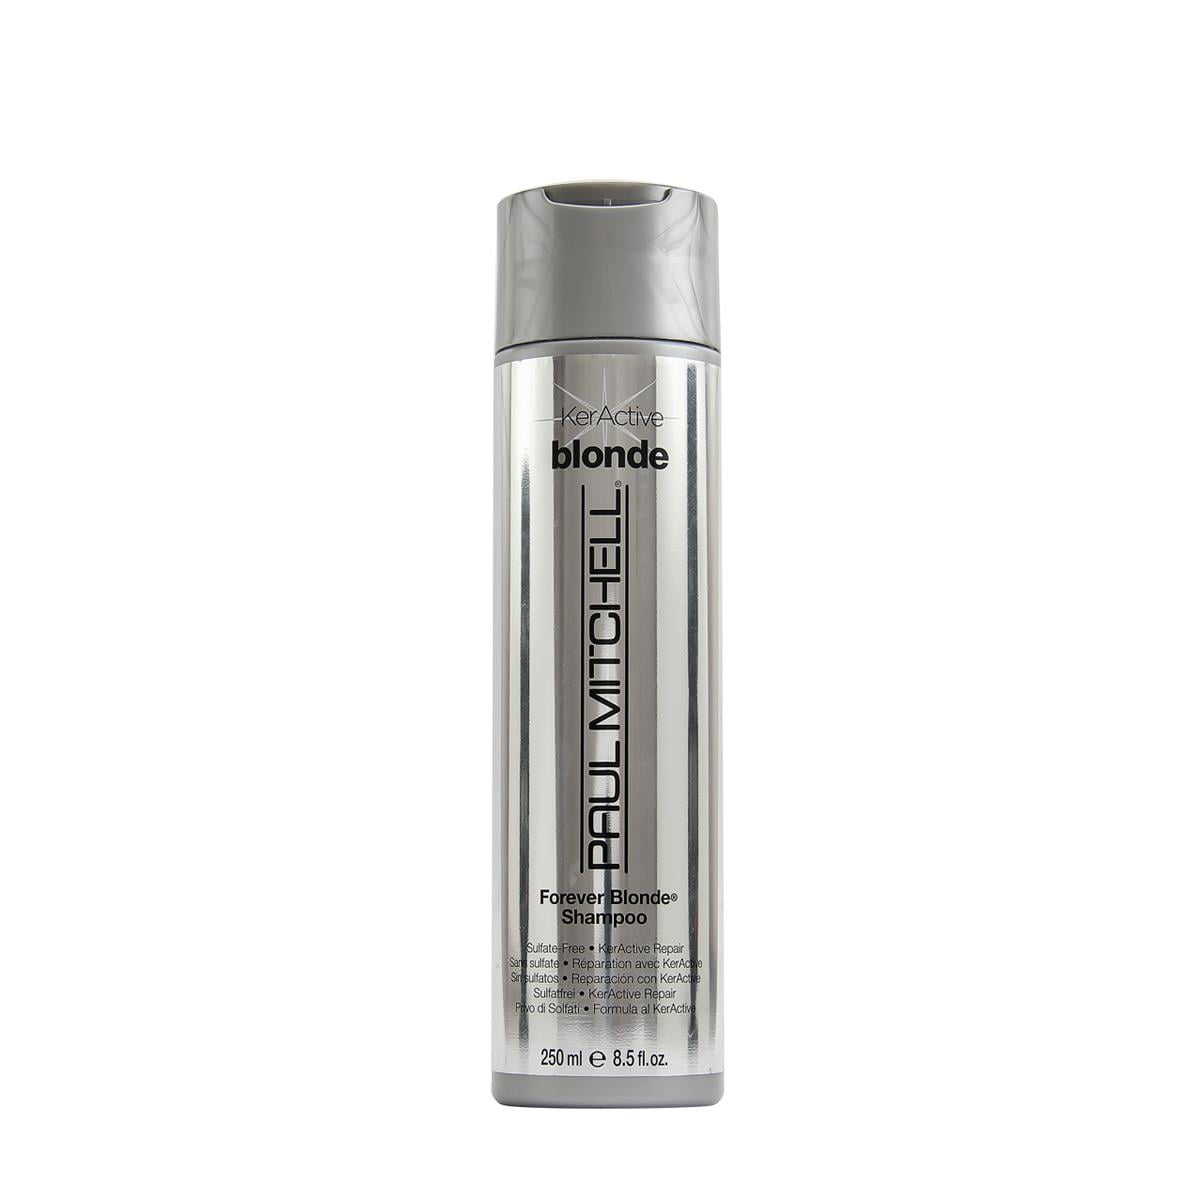 Paul Mitchell Forever Blonde Shampoo - 250ml